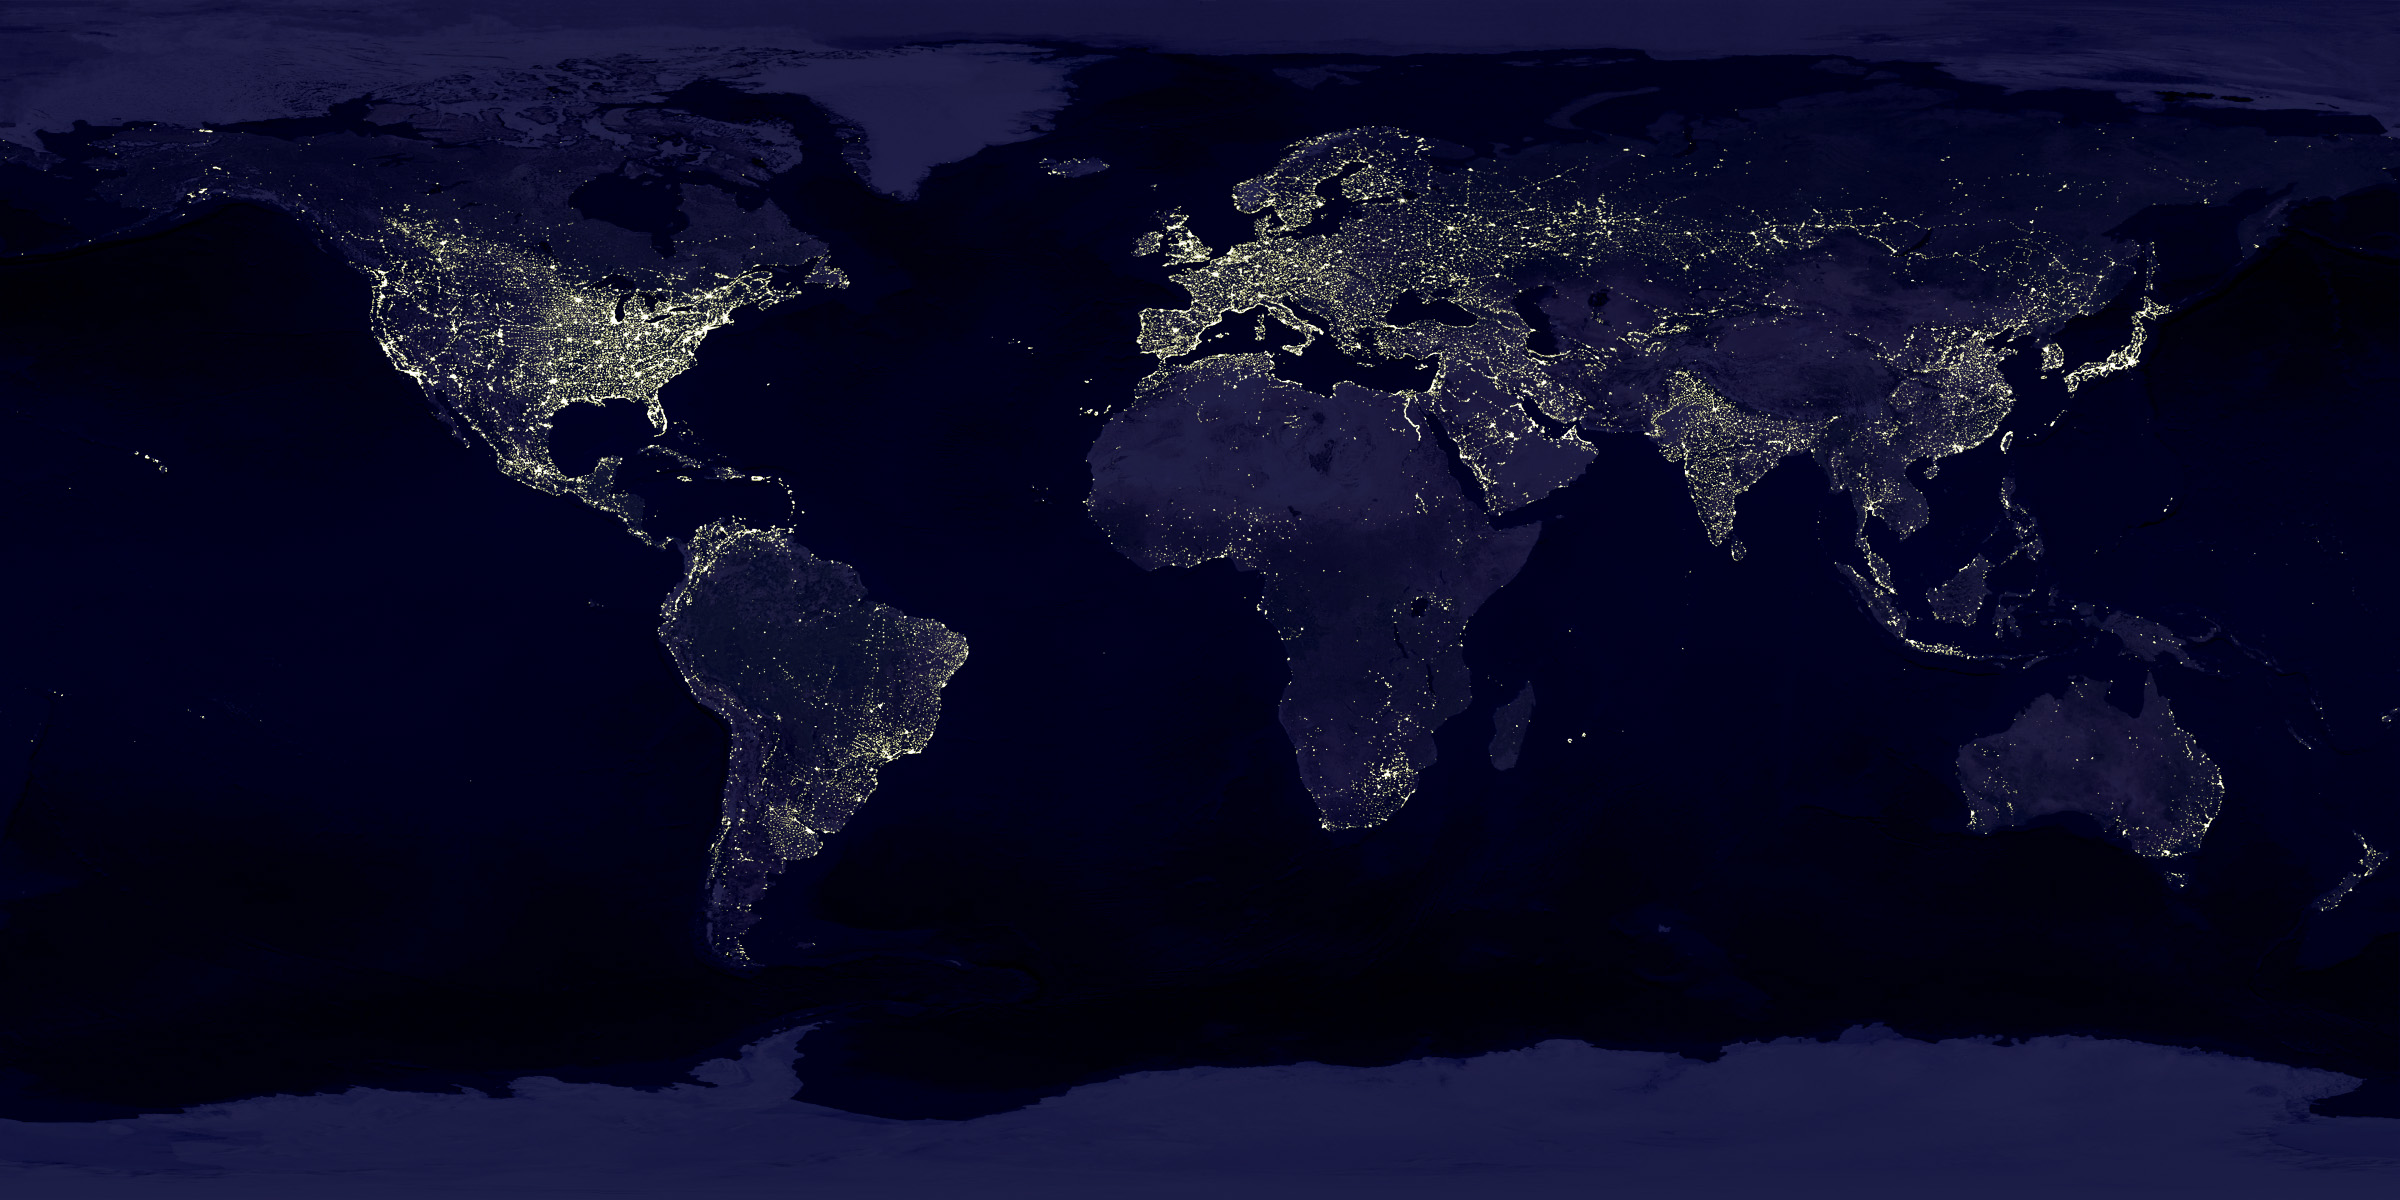 NASA Visible Earth Earths City Lights